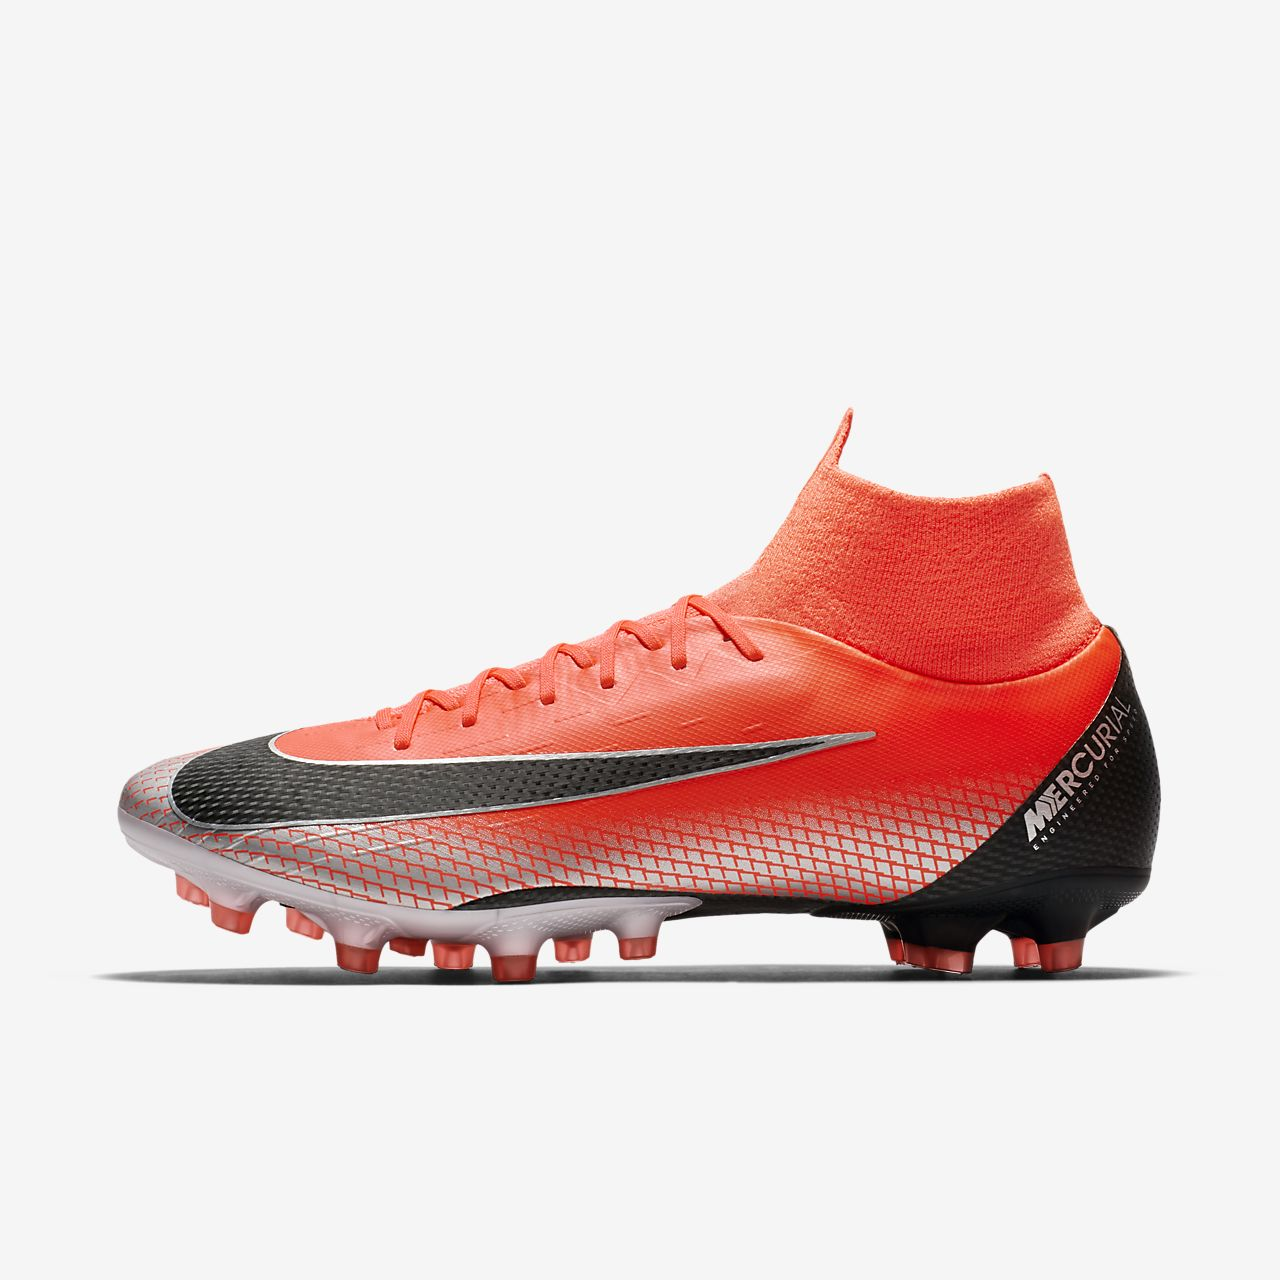 ... Nike Mercurial Superfly VI Pro CR7 AG-PRO Artificial-Grass Football Boot 657eb27113178